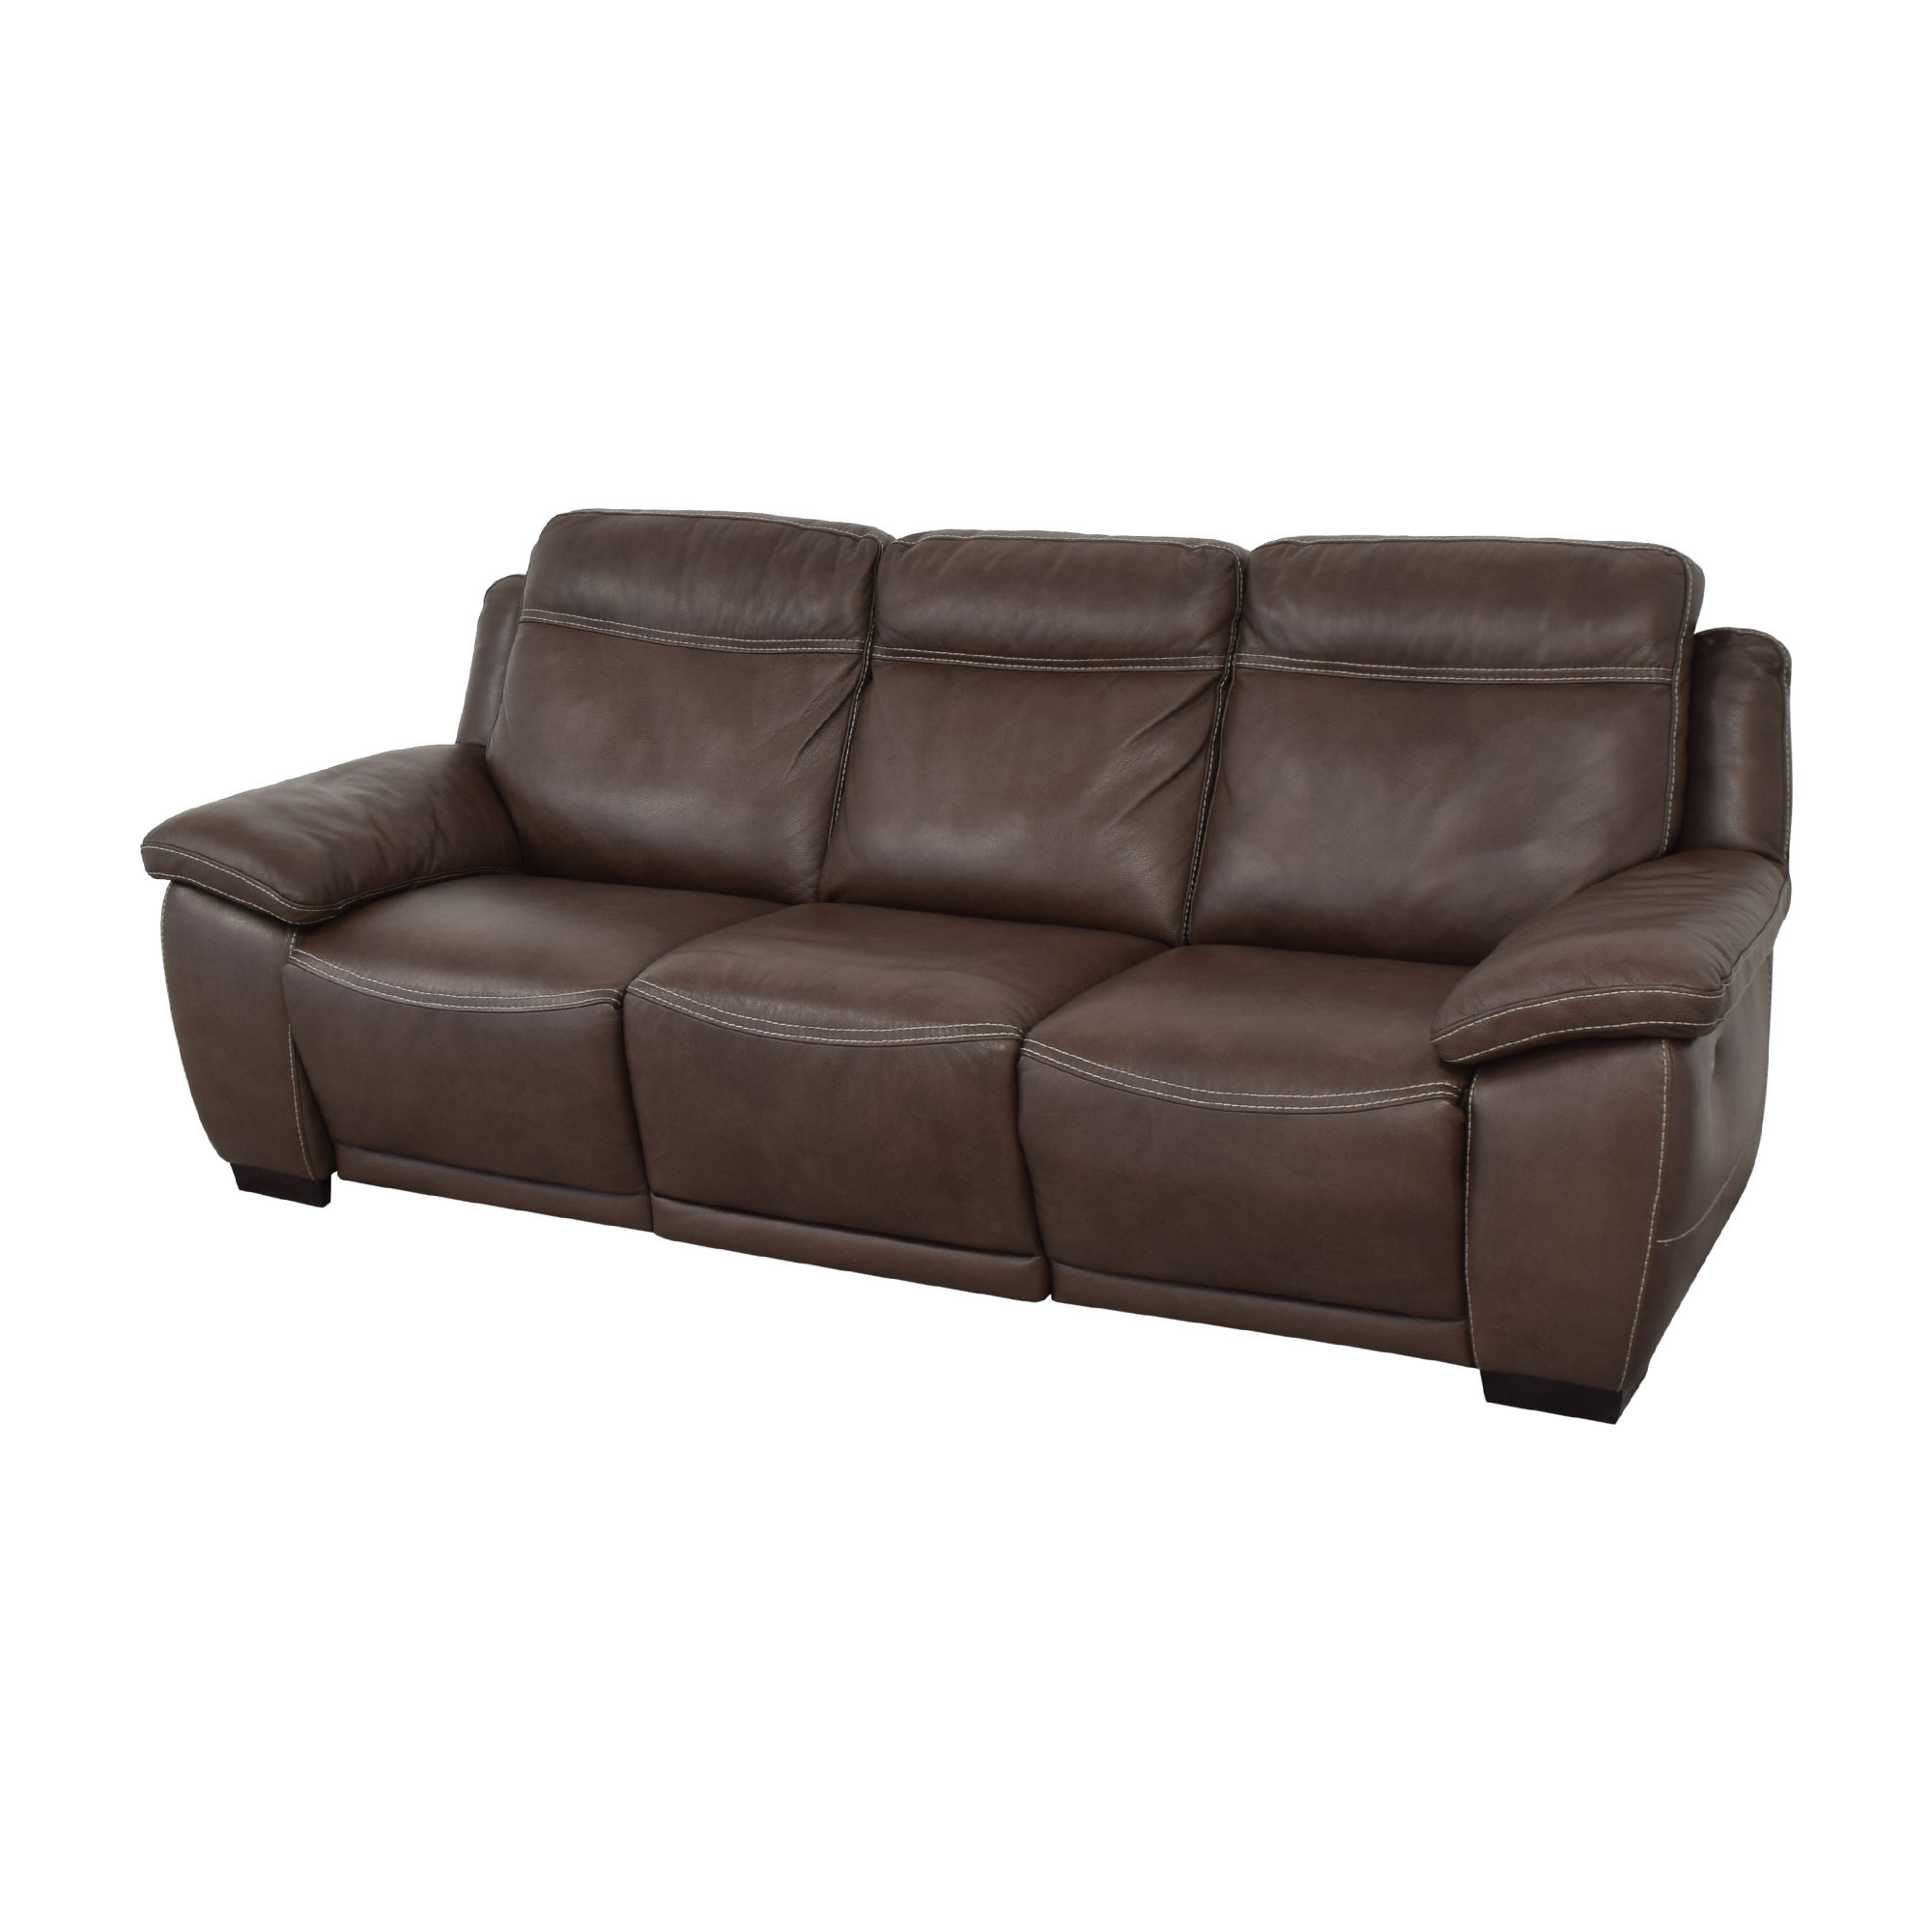 Raymour & Flanigan Raymour & Flanigan Sofa with Two Recliners brown